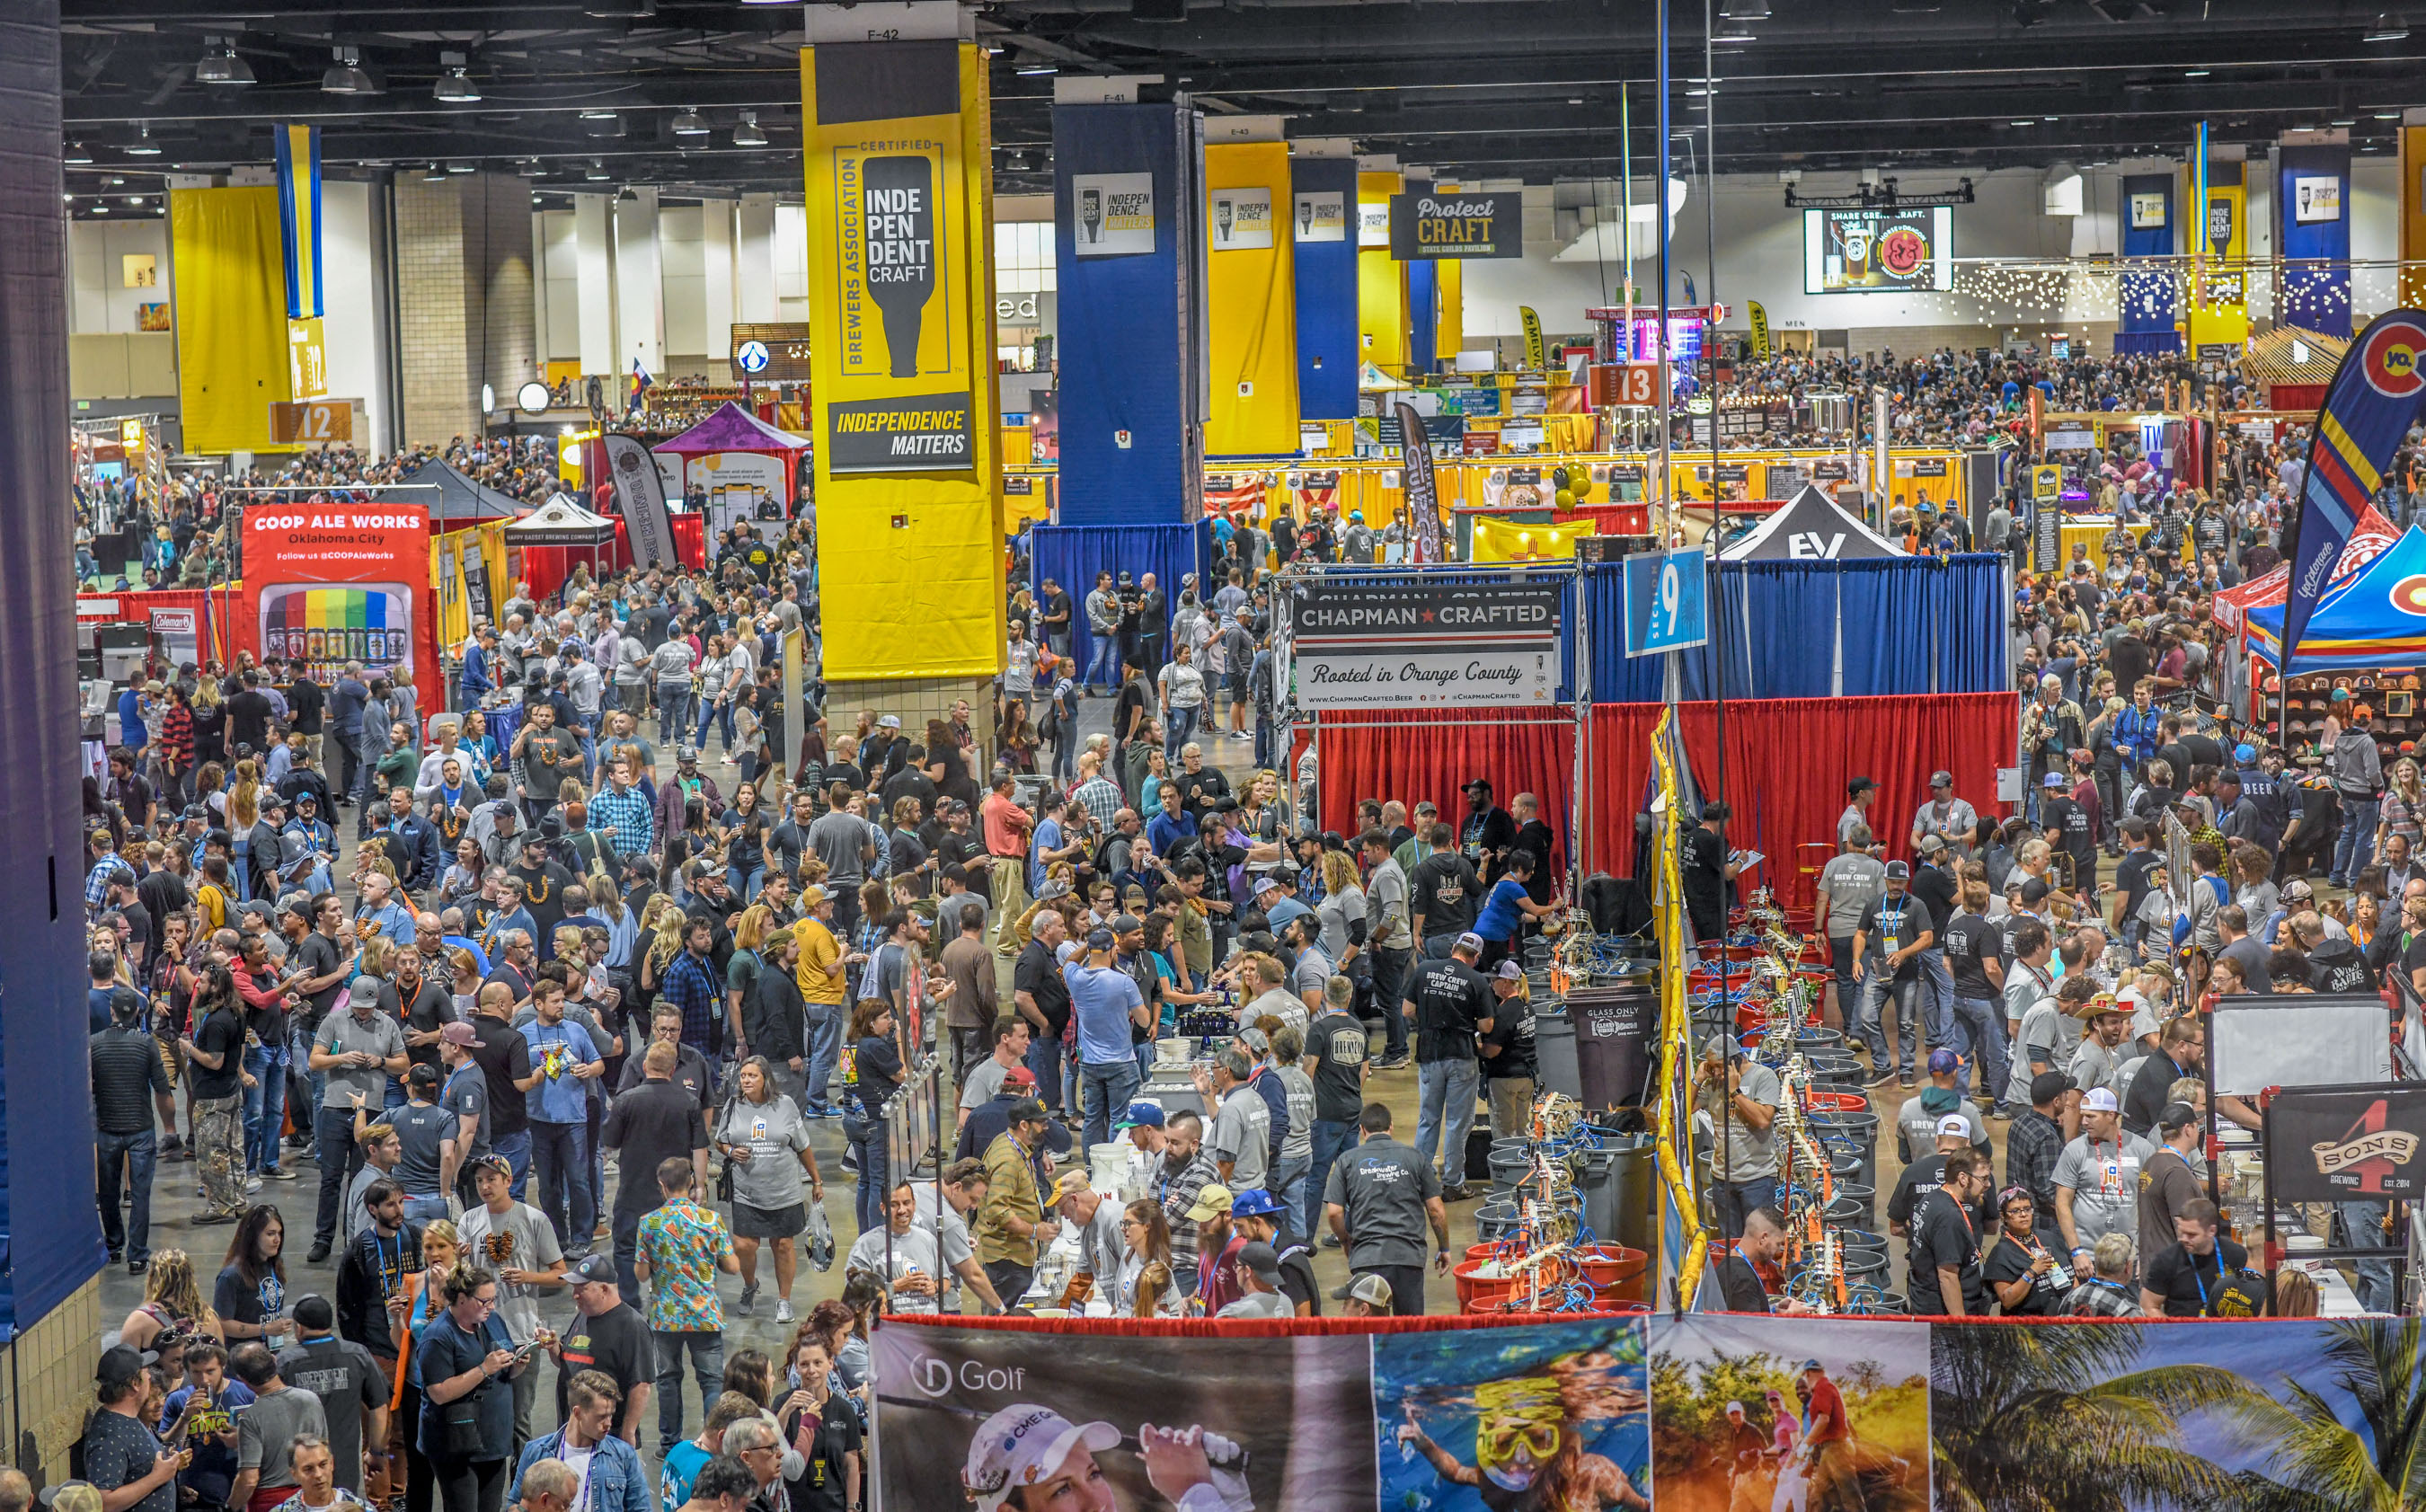 Attendees at the 2019 Great American Beer Festival - Photo ©Brewers Association